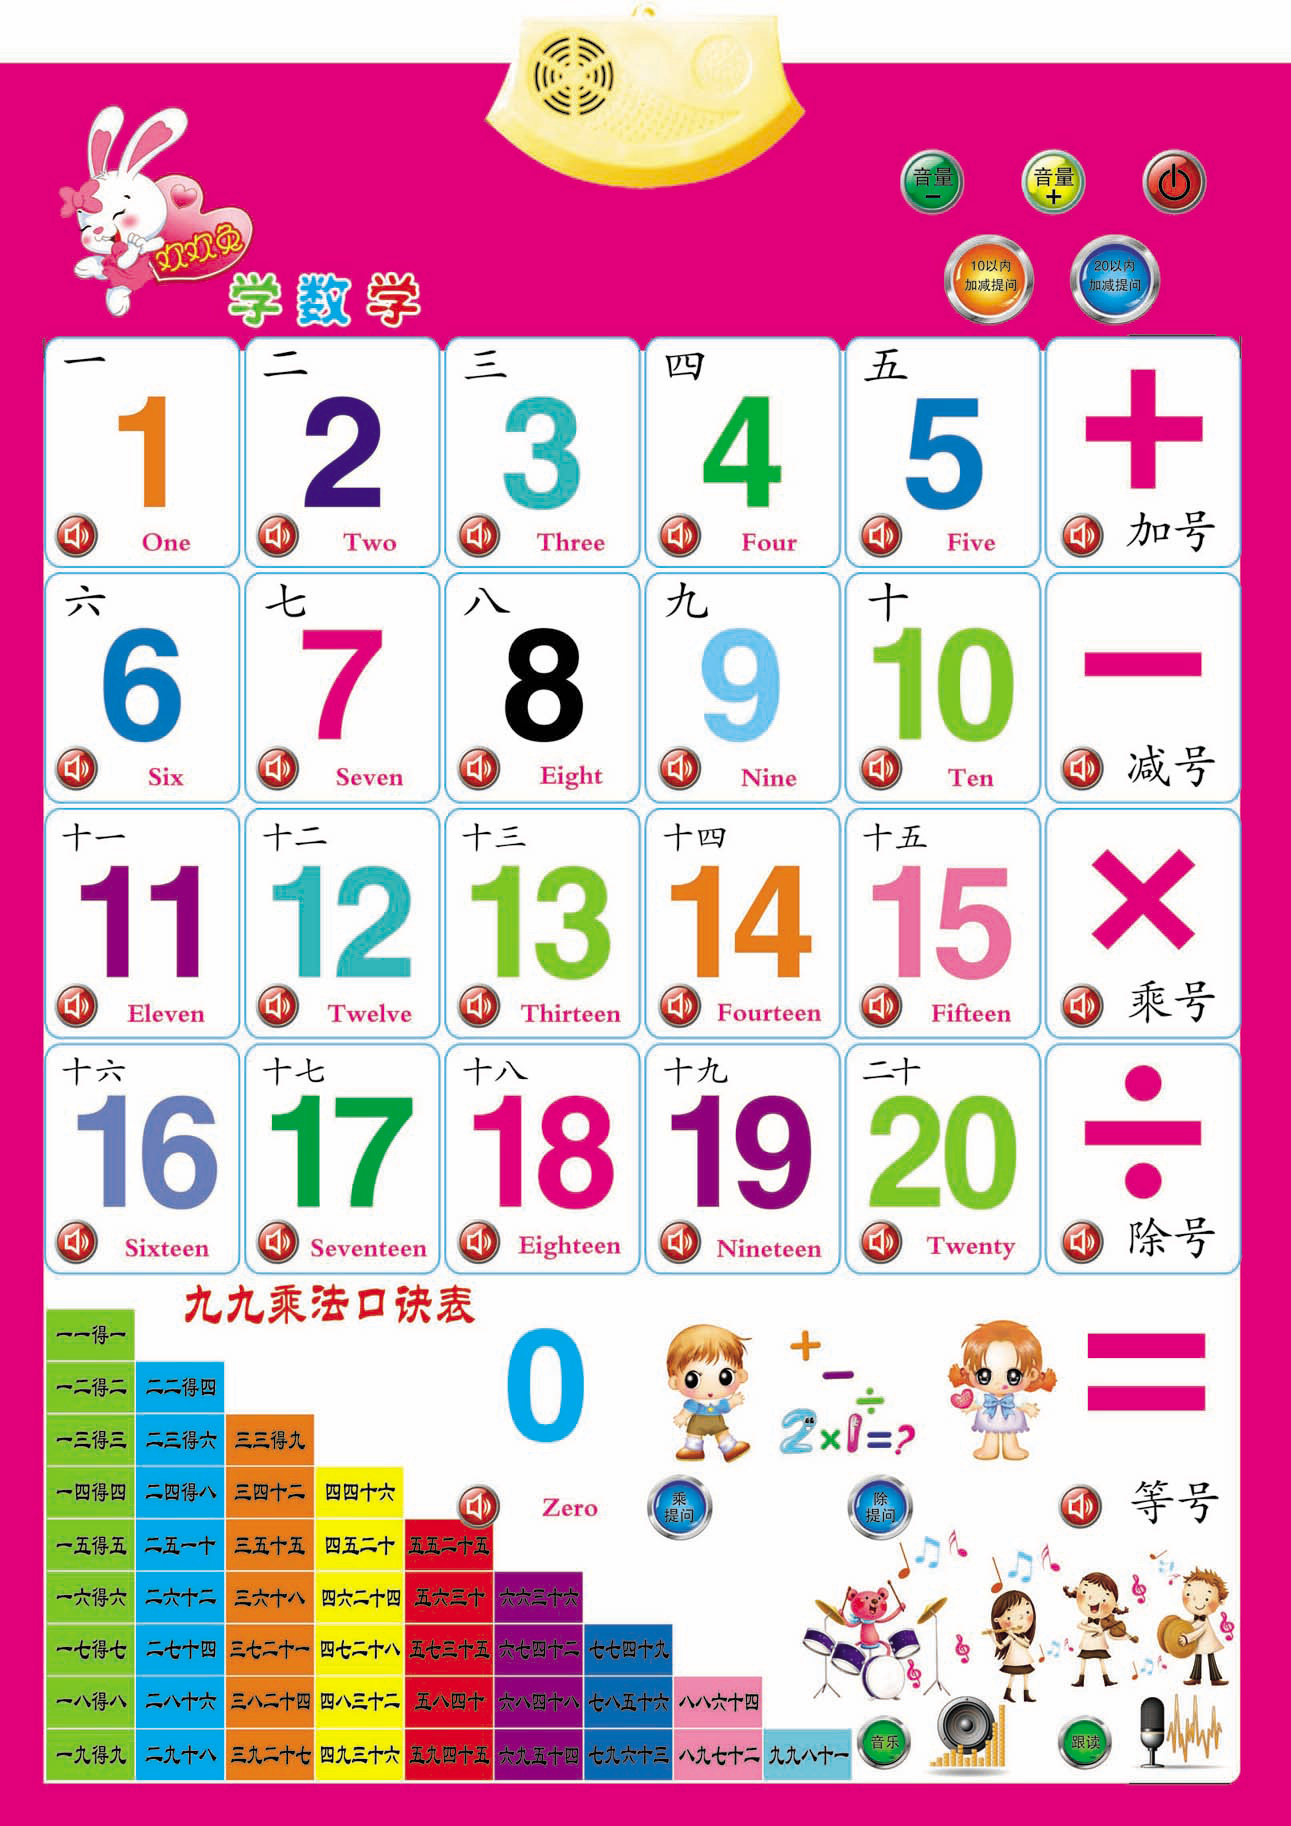 Young Children S Early Education Has Sound Wall Chart